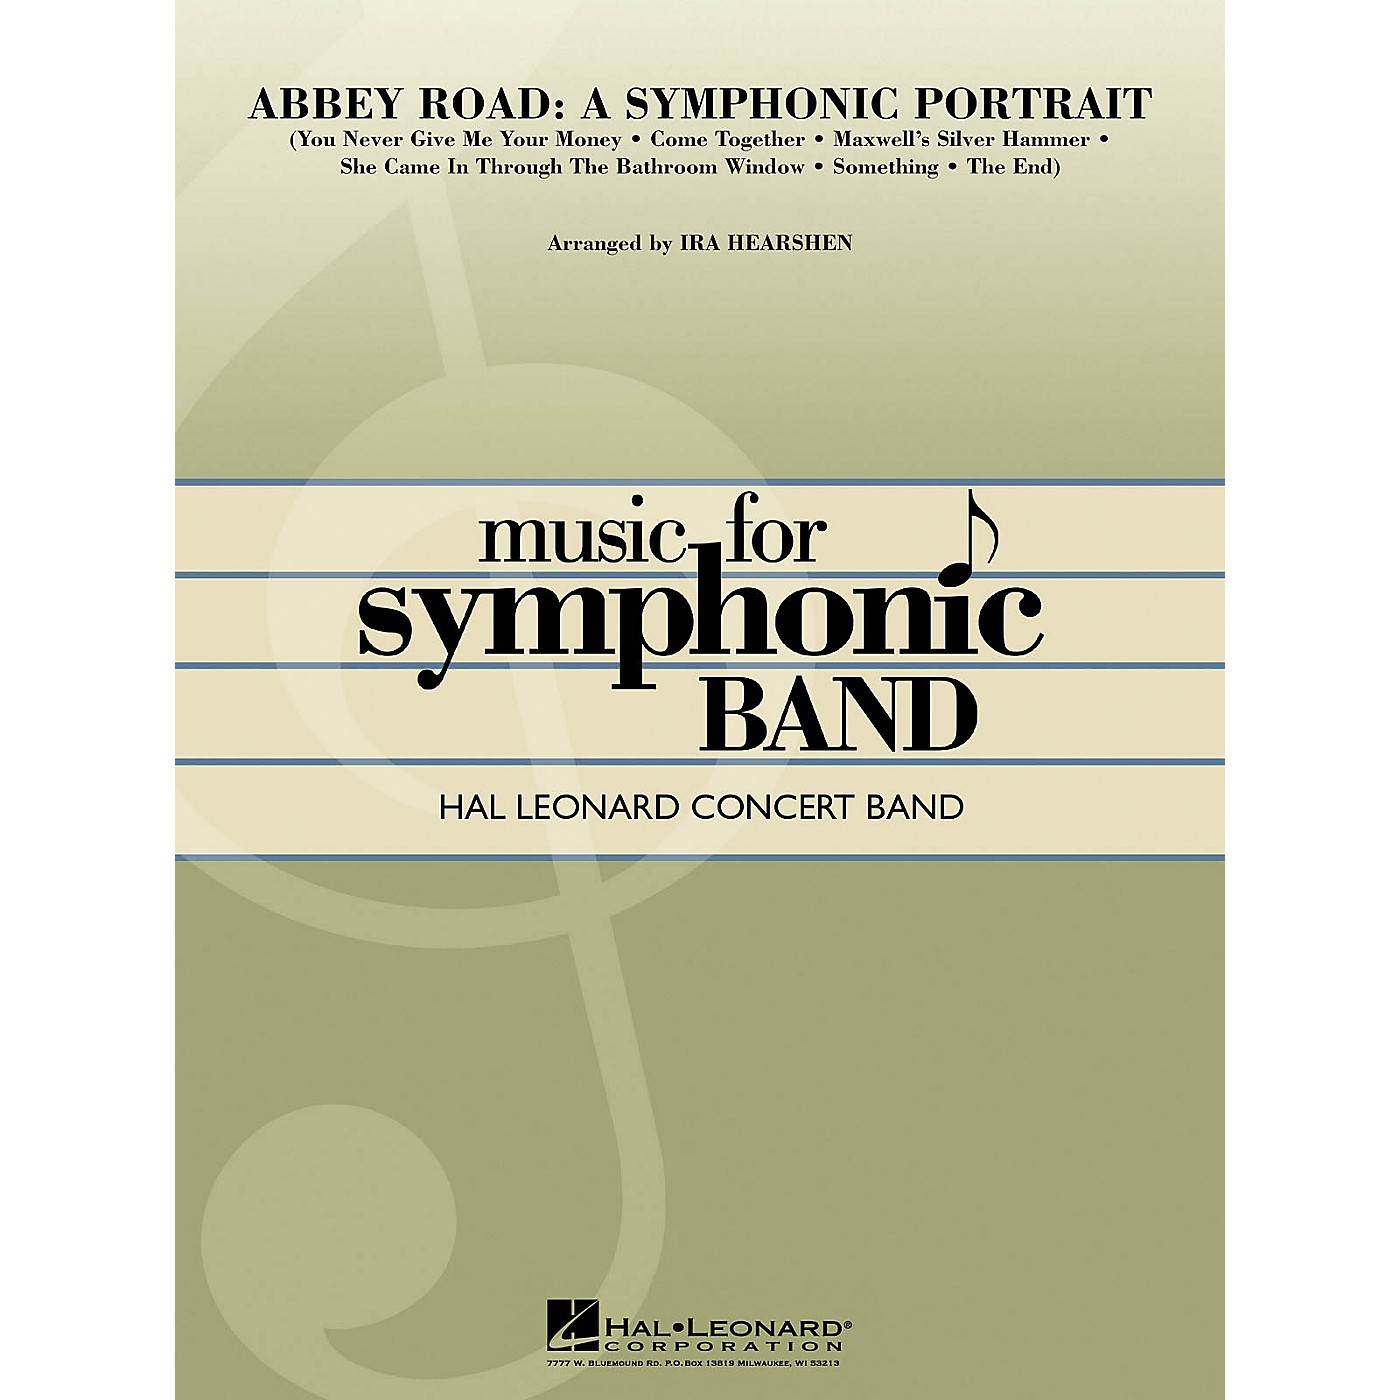 Hal Leonard Abbey Road - A Symphonic Portrait Concert Band Level 4 by The Beatles Arranged by Ira Hearshen thumbnail